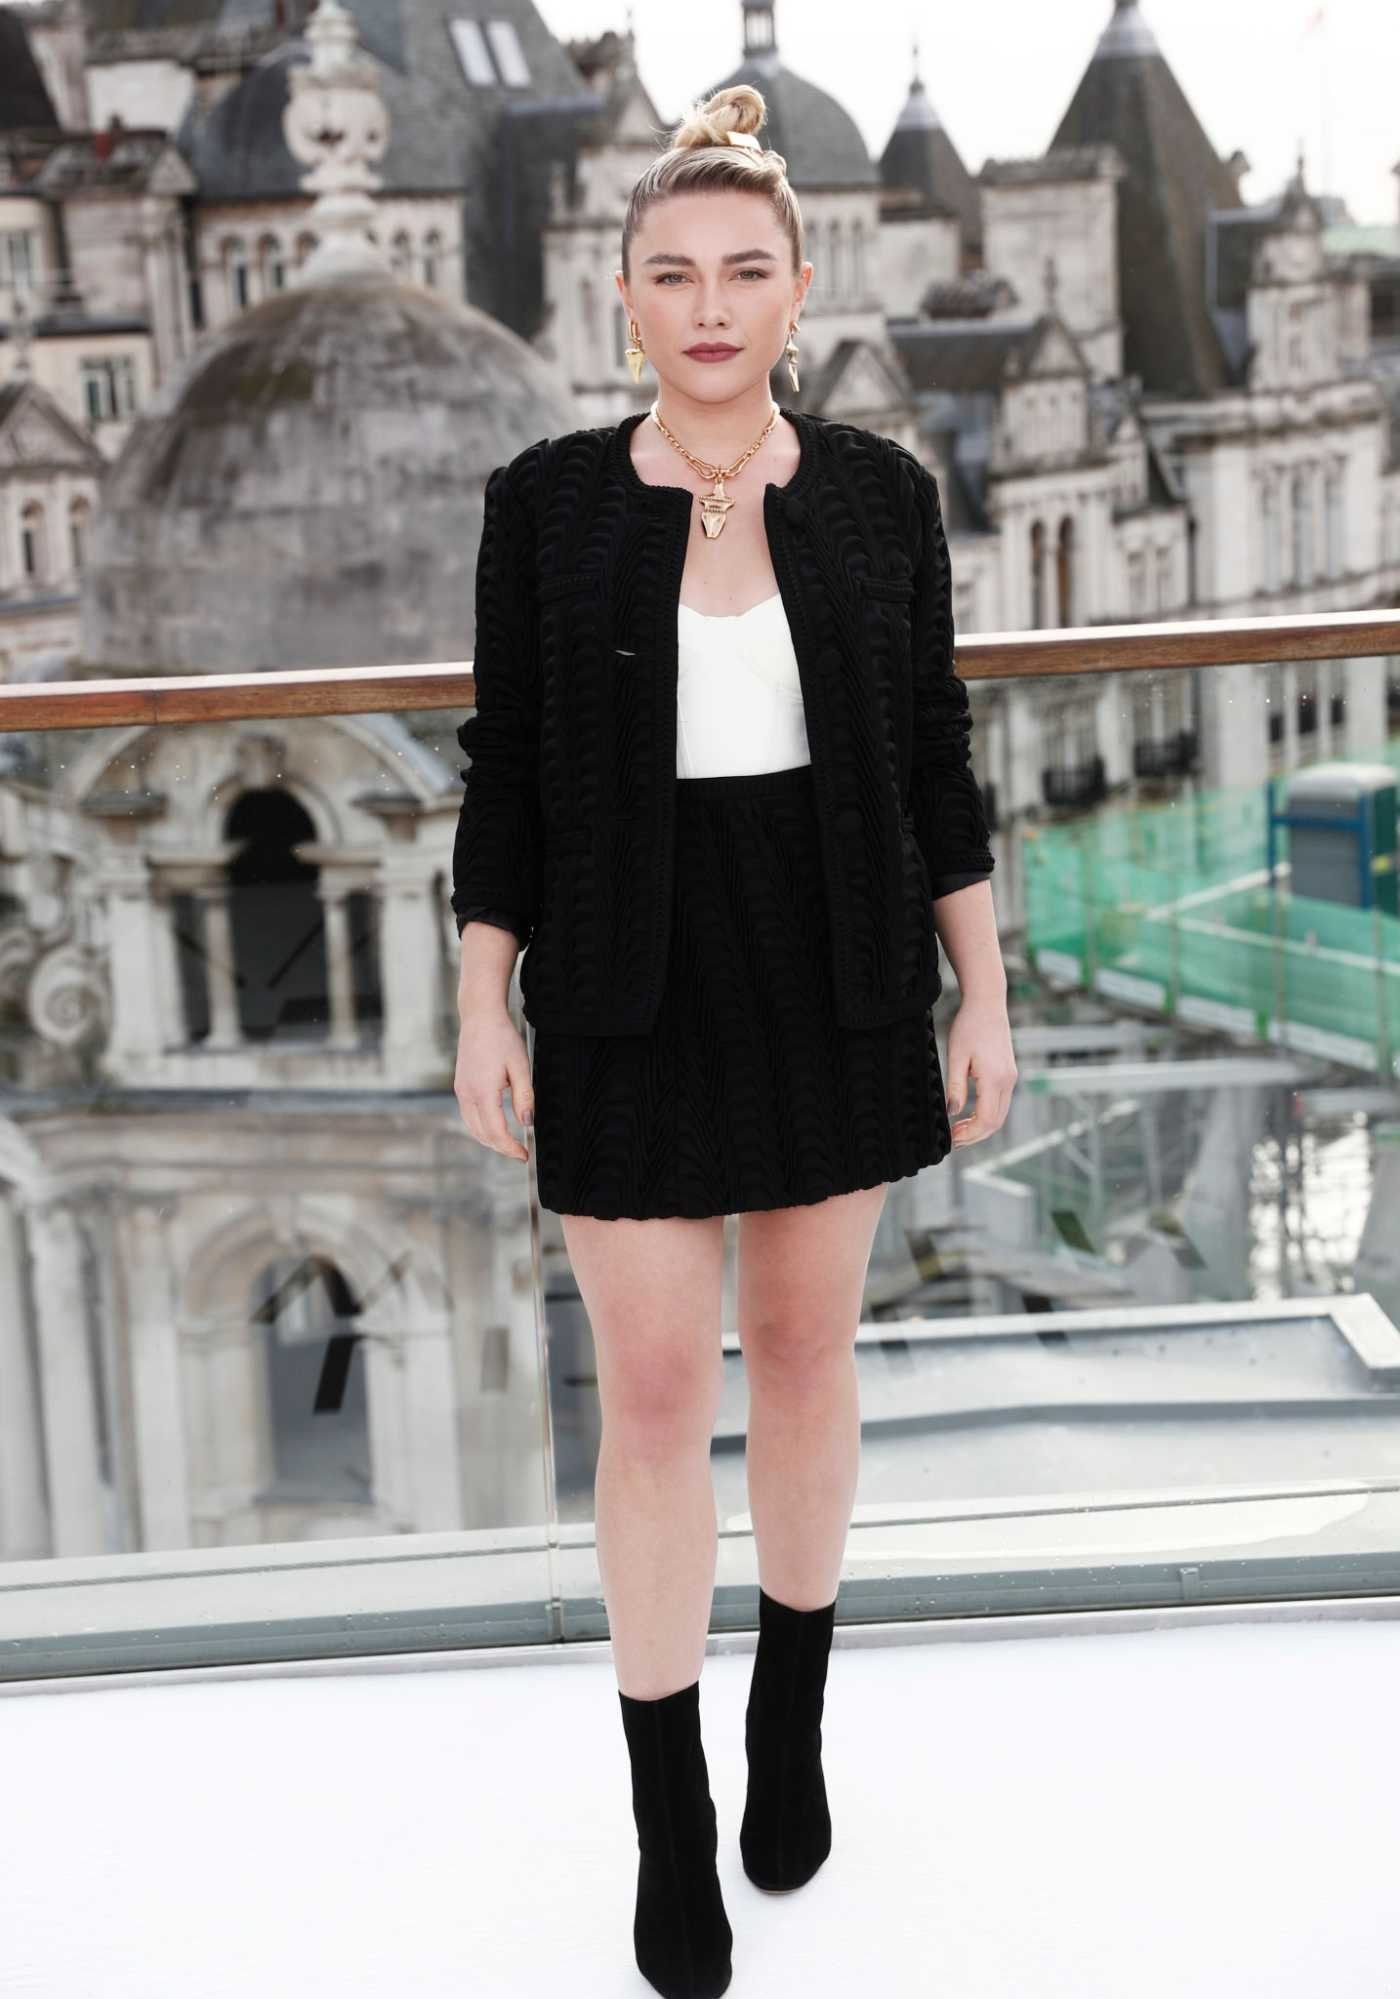 Florence Pugh Attends the Liittle Women Premiere in Paris 12/12/2019